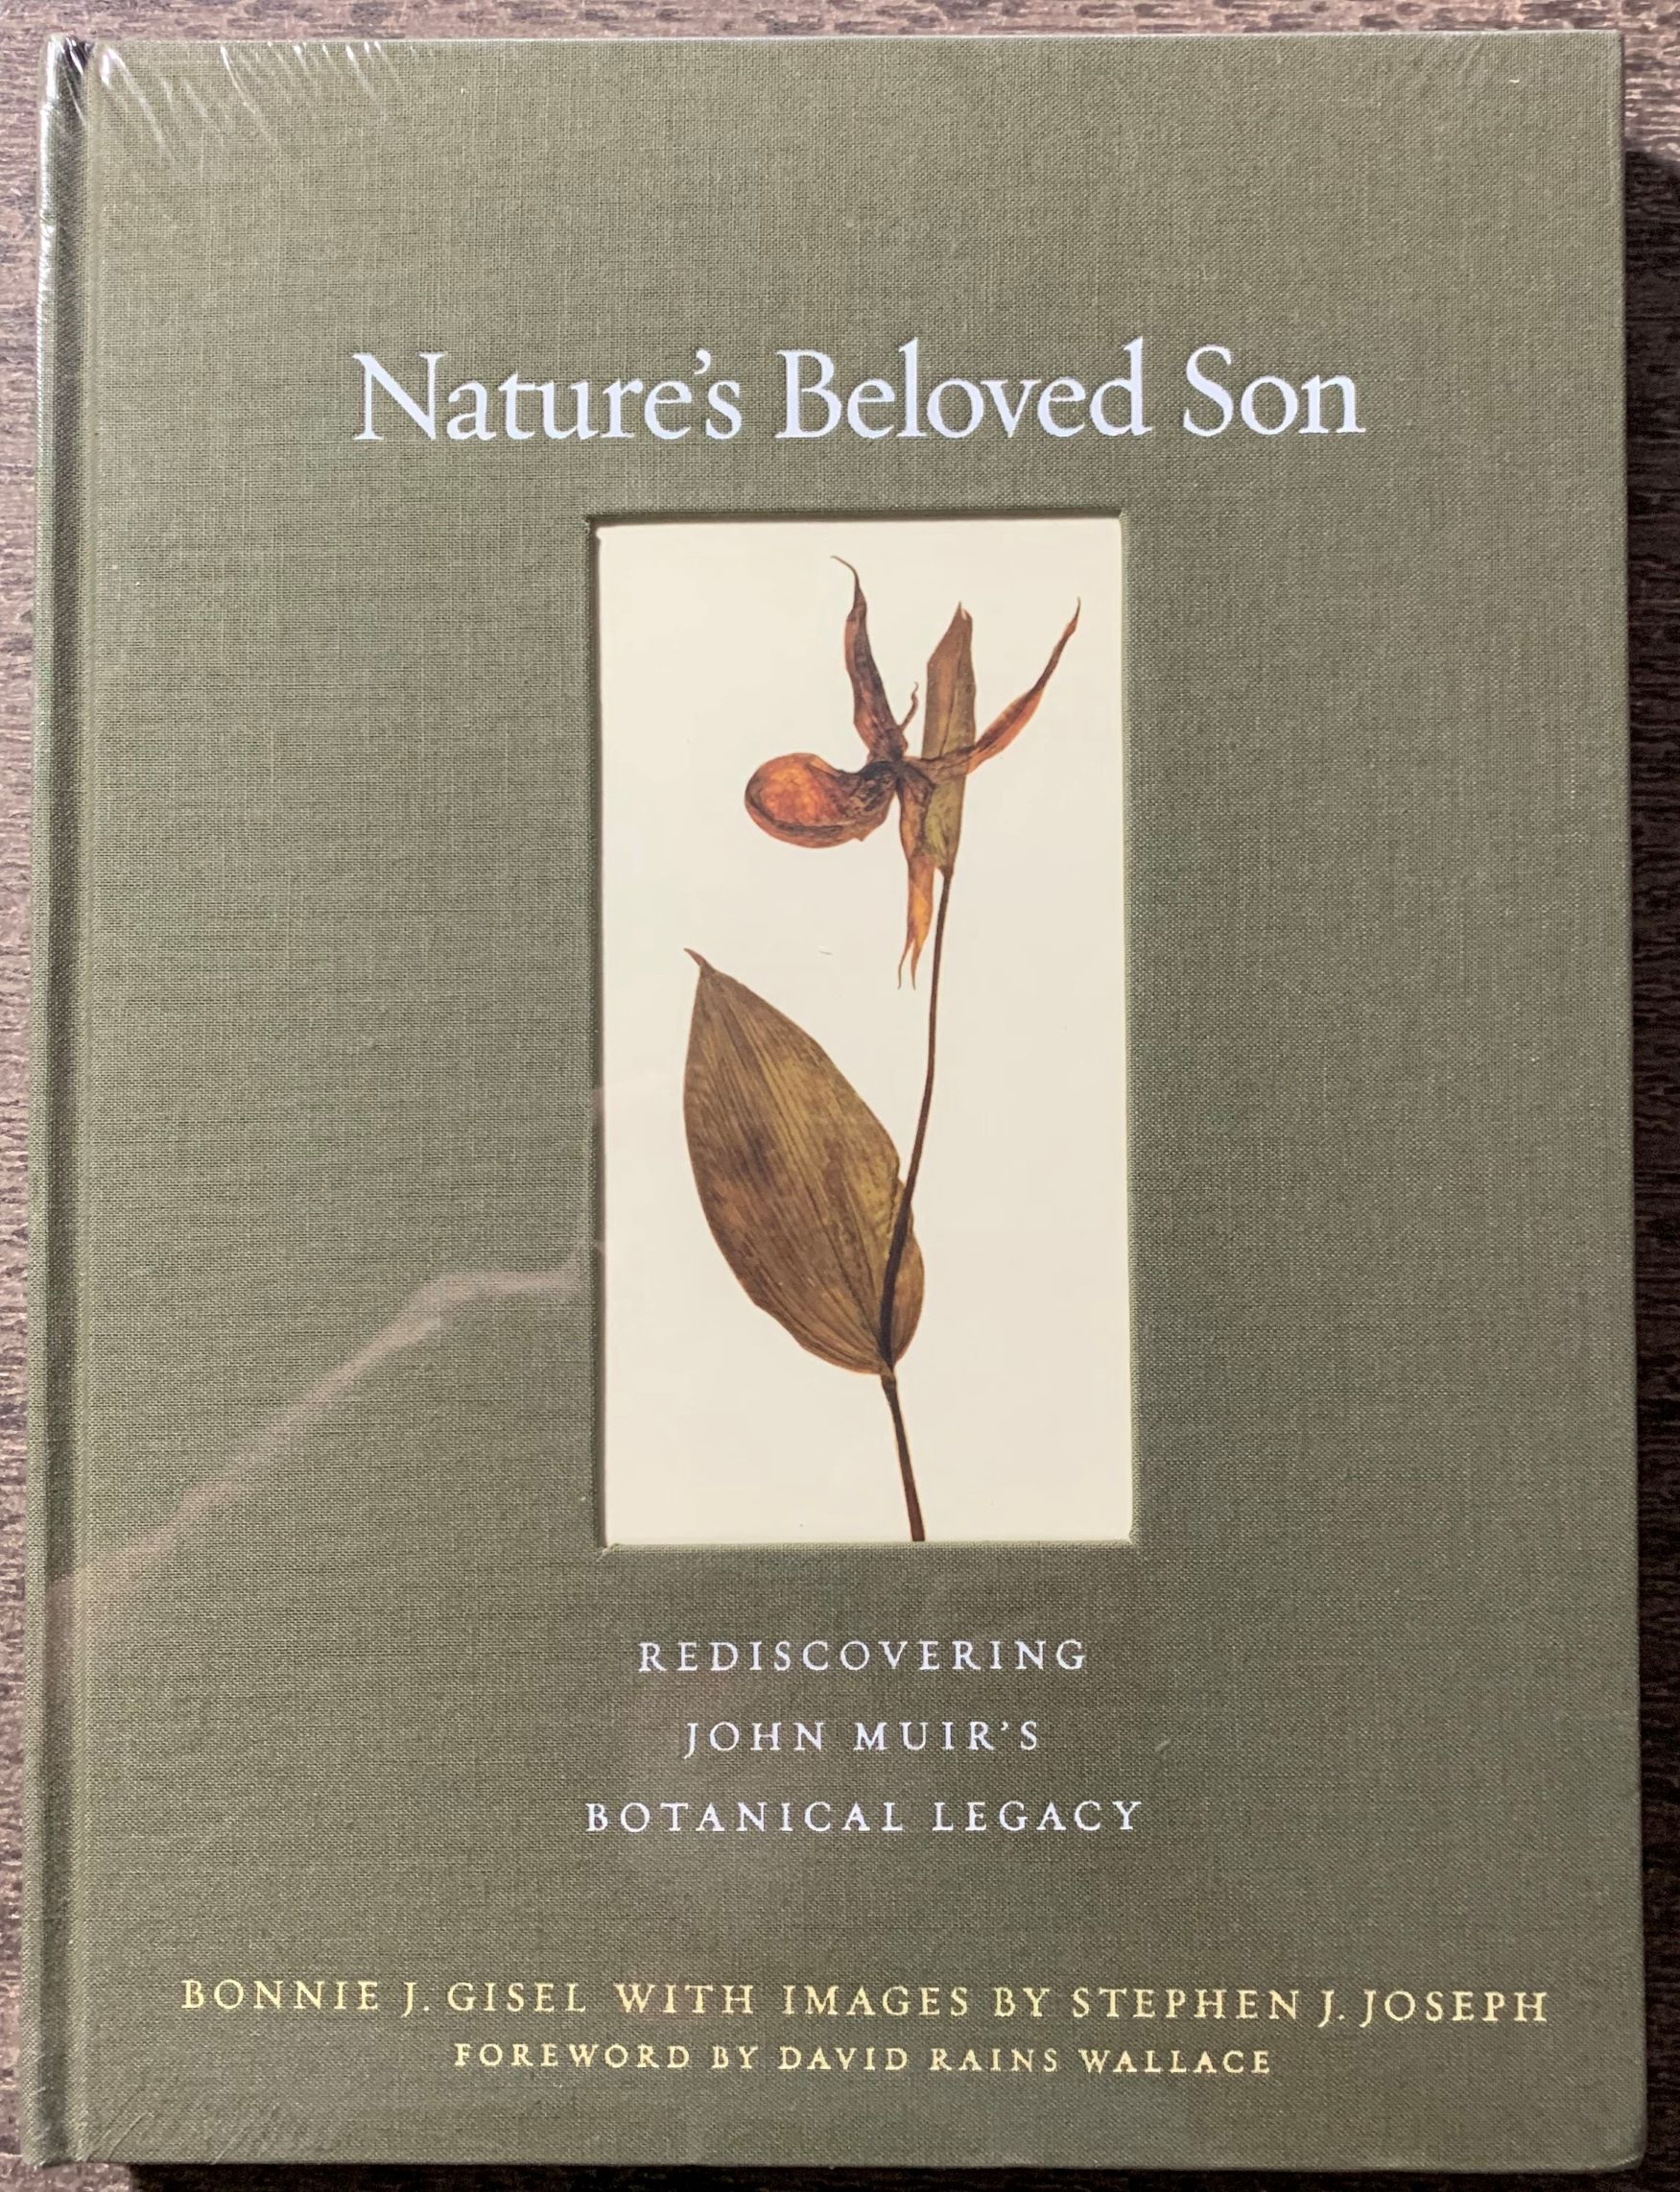 Image for Nature's Beloved Son, Rediscovering John Muir's Botanical Legacy.  Forward by David Rains Wallace.